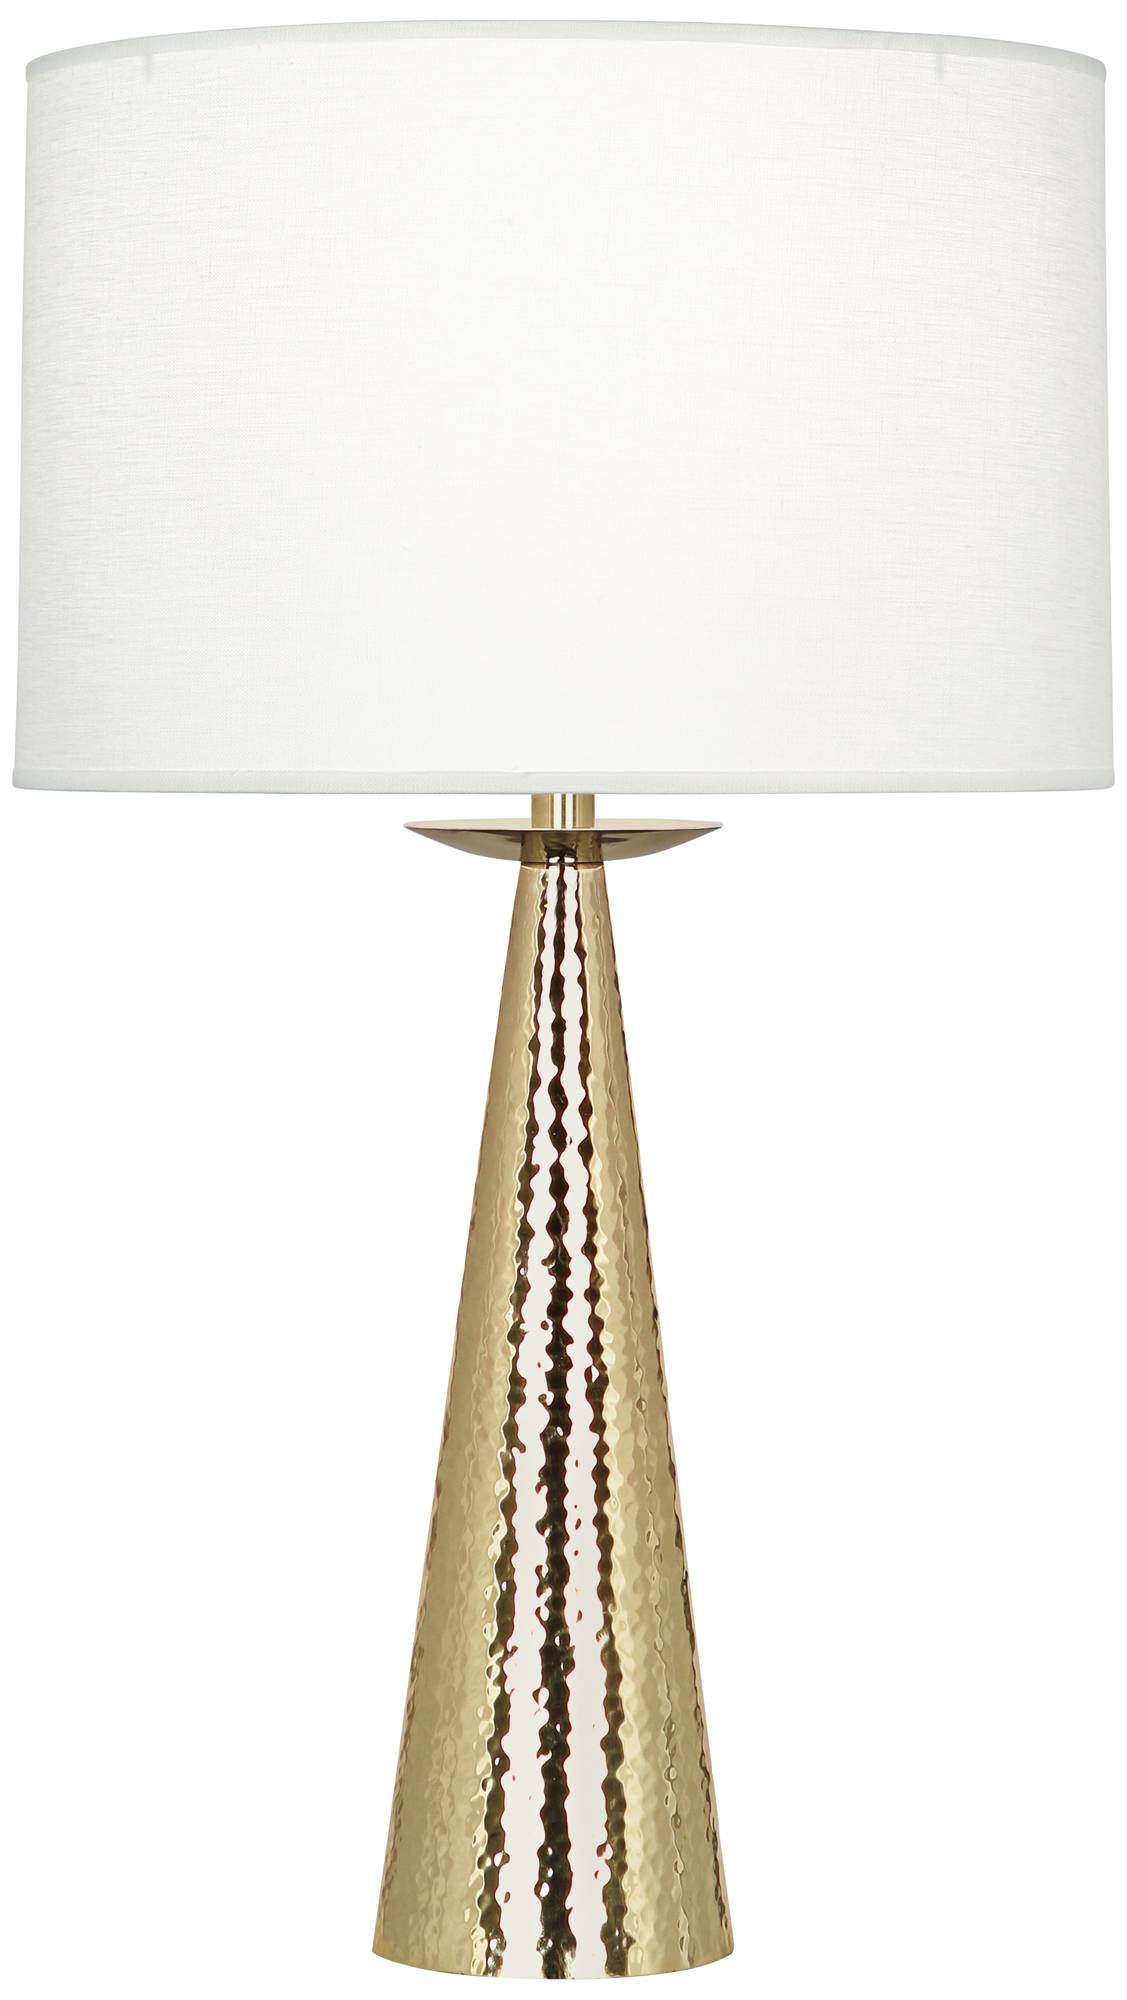 Robert abbey dal modern brass table lamp